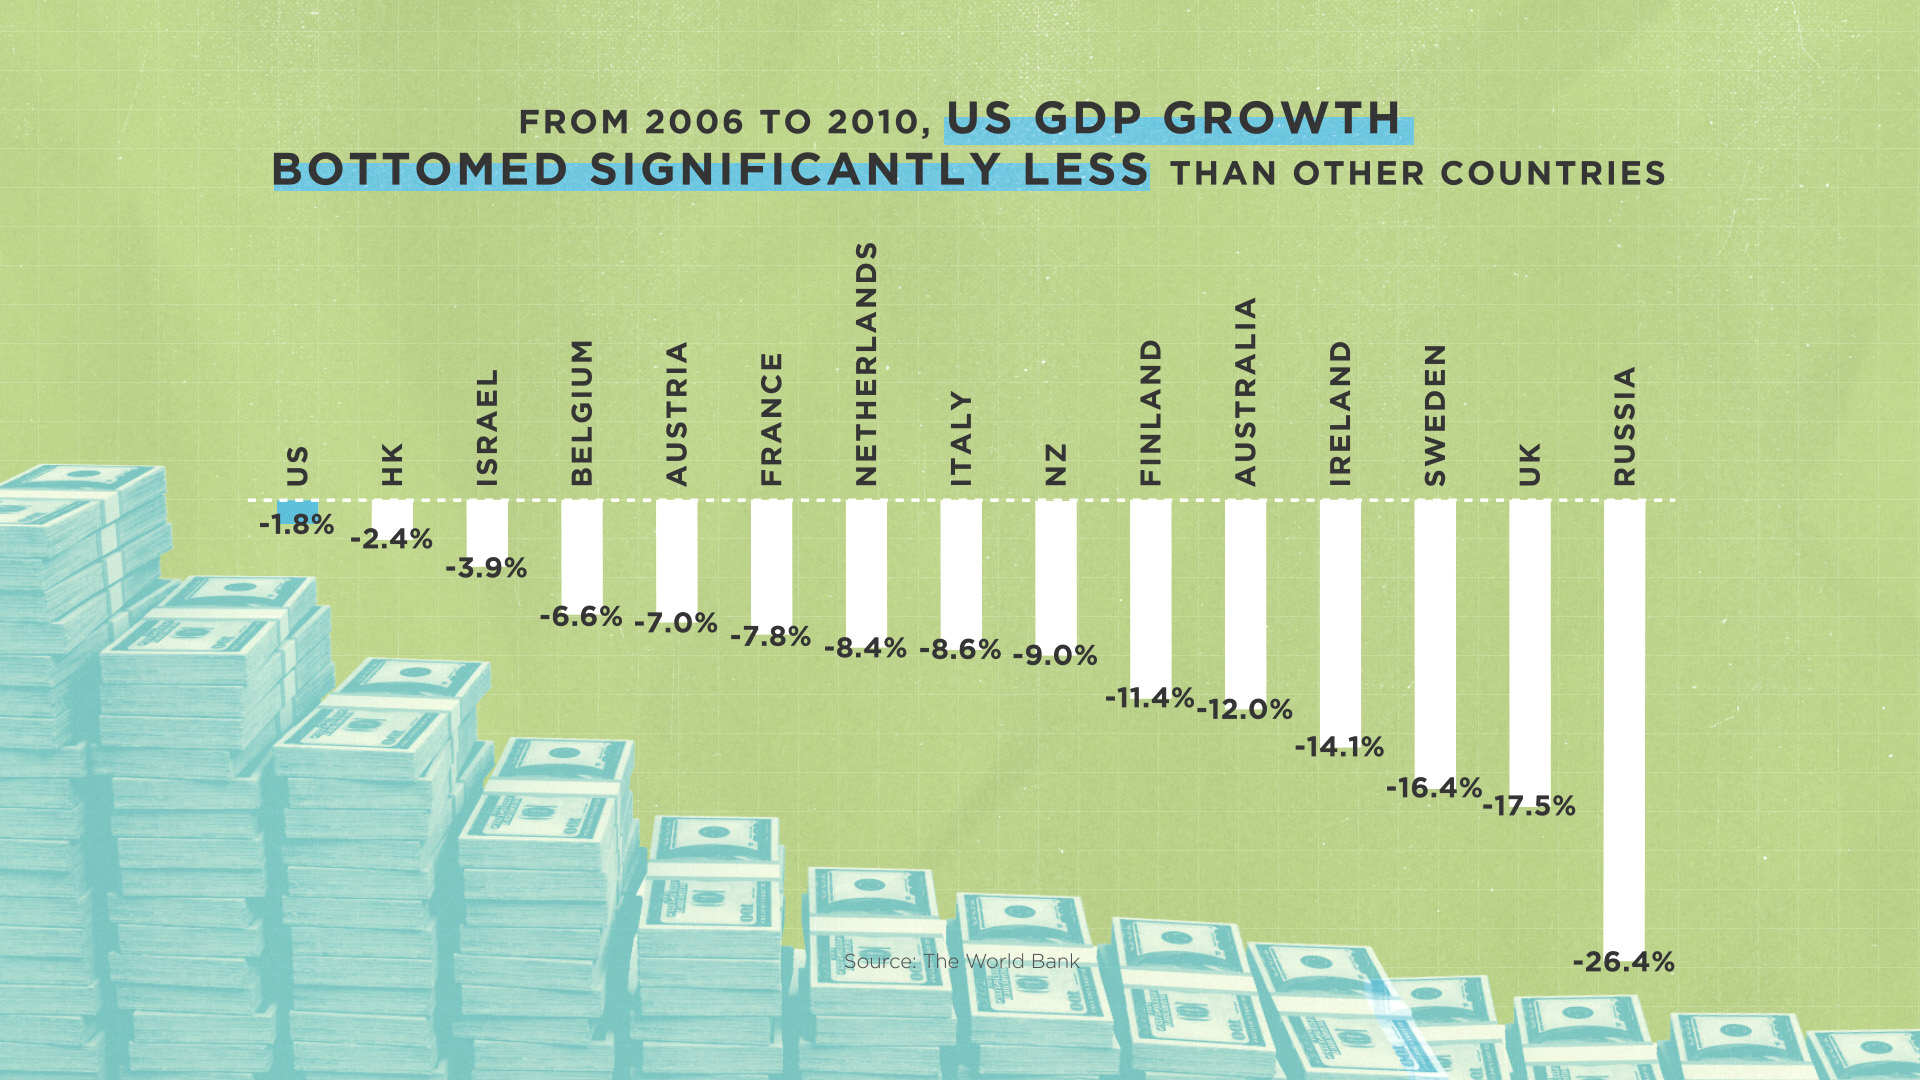 From 2006 to 2010, US GDP Growth Bottomed Significantly Less Than Other Countries - SIFMA